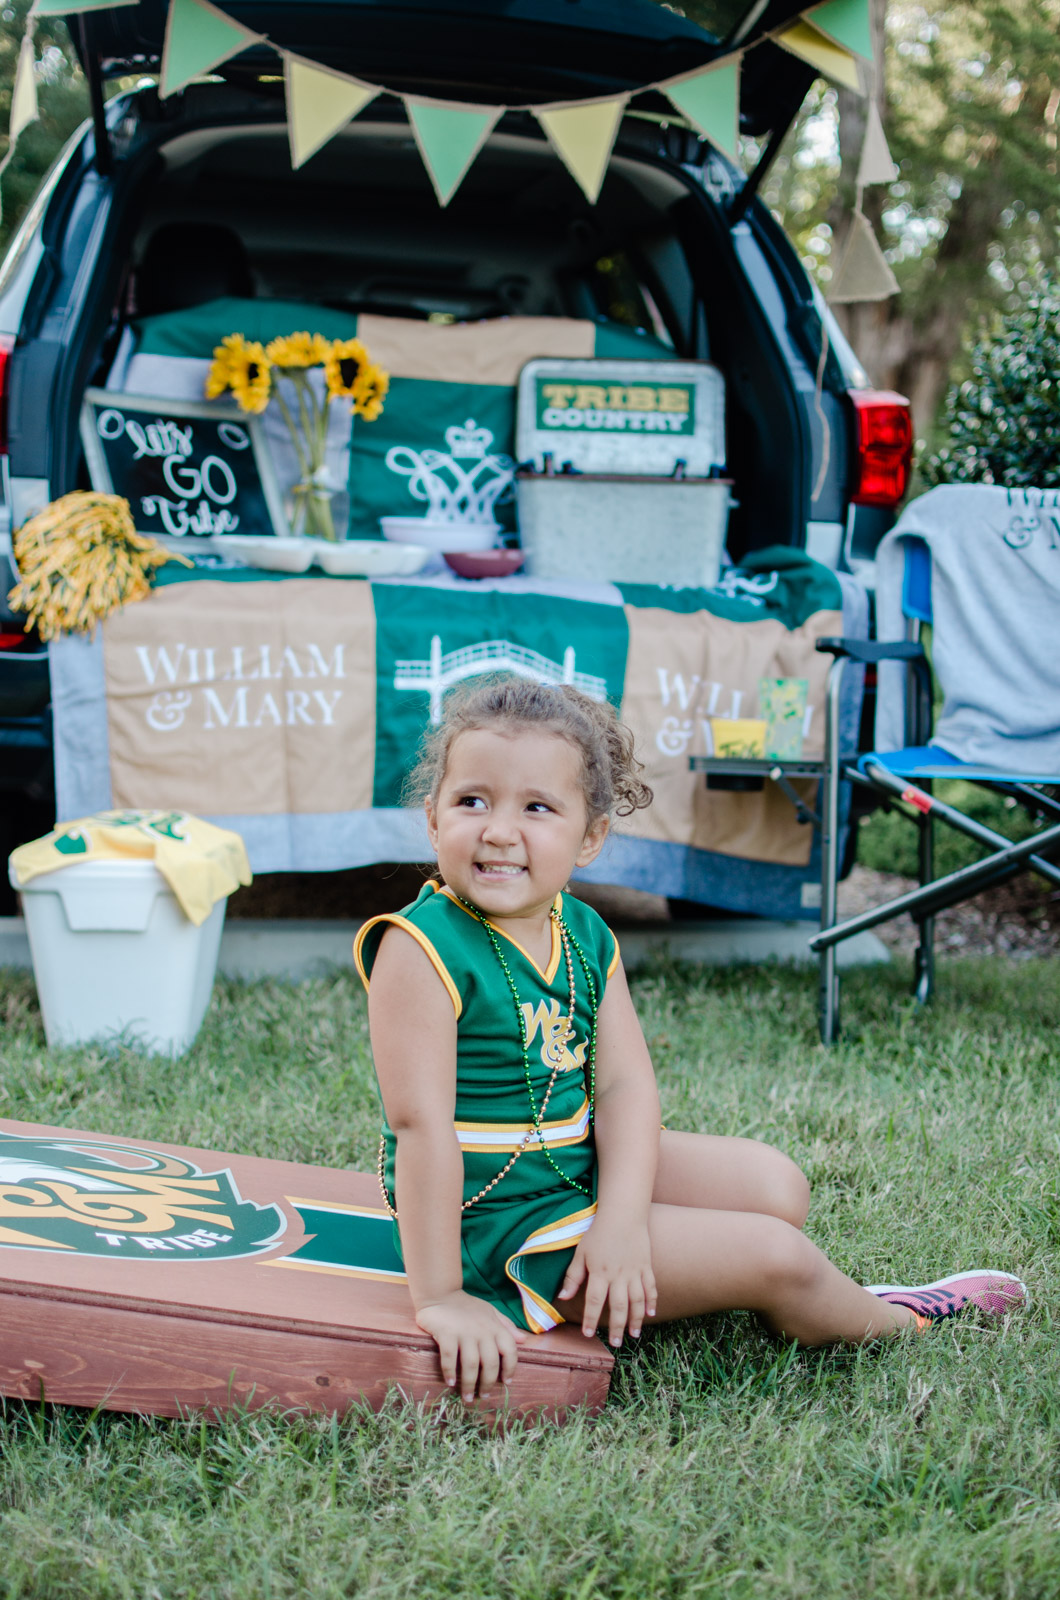 new athletic logo william and mary - W&M kids cheerleading | bylaurenm.com